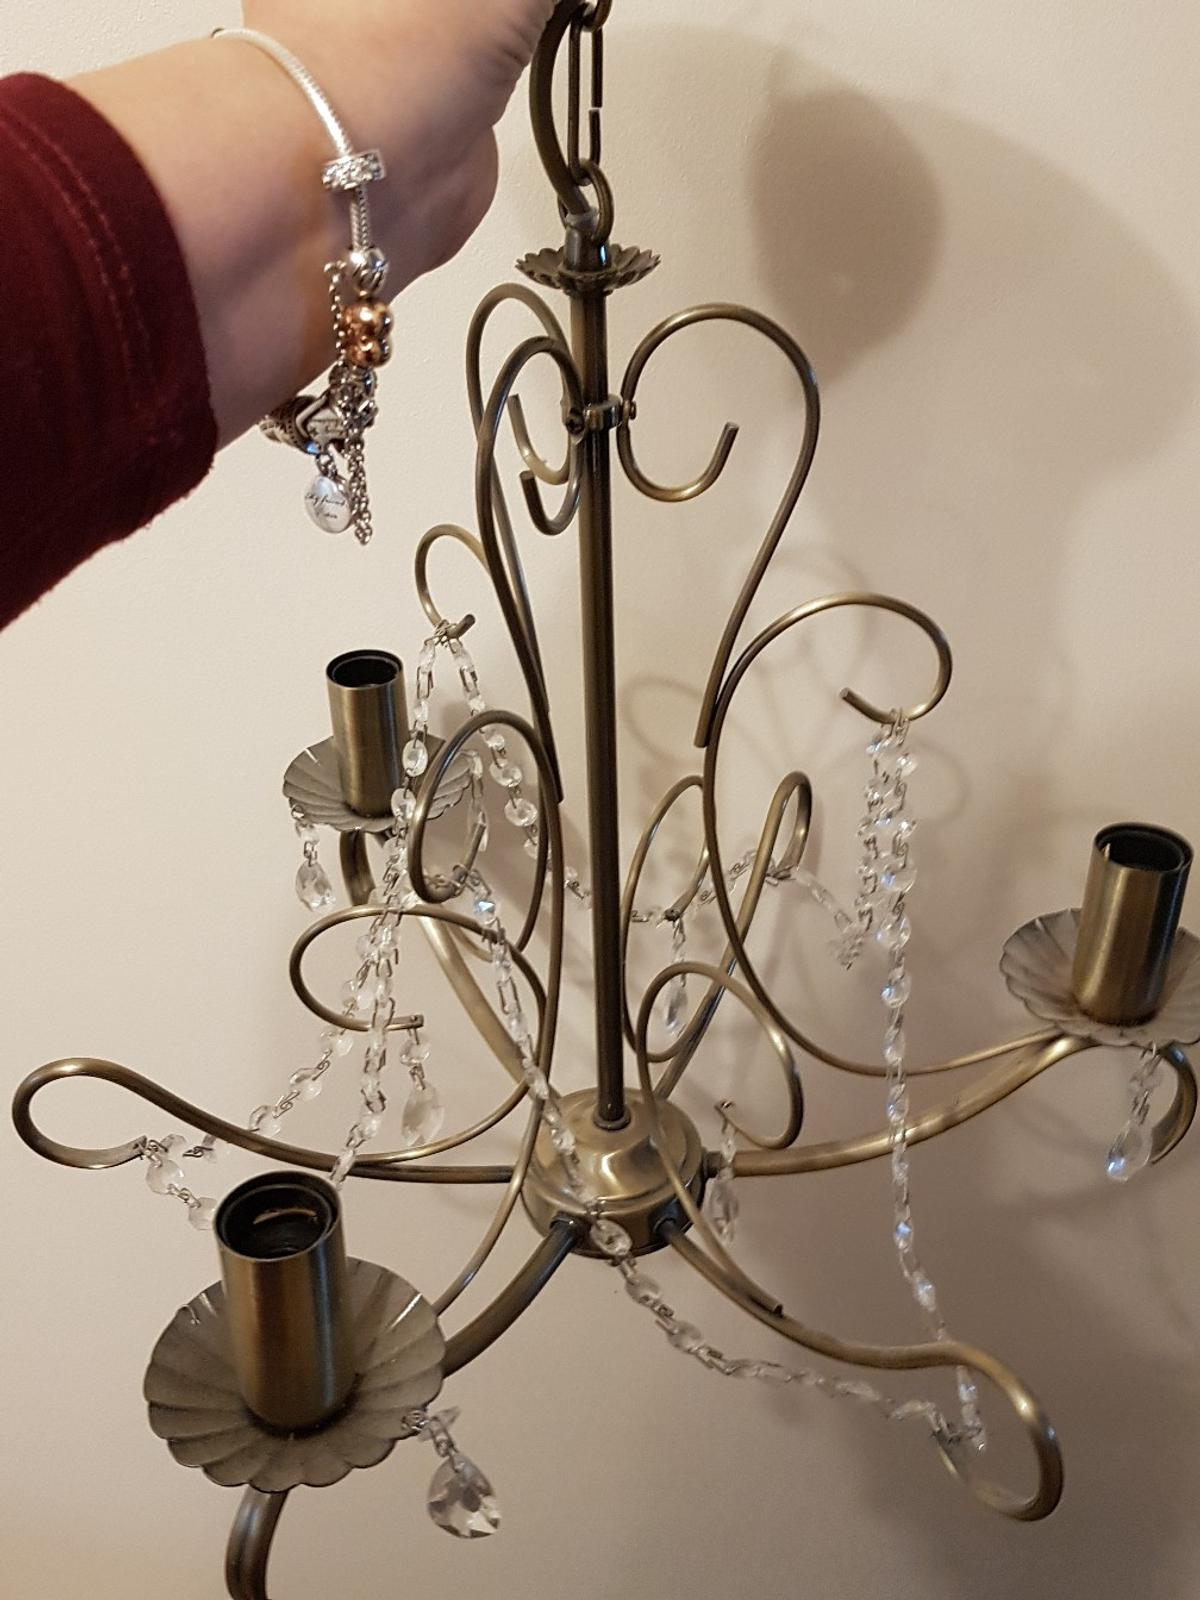 a pair of light fitting. Collection from great linford